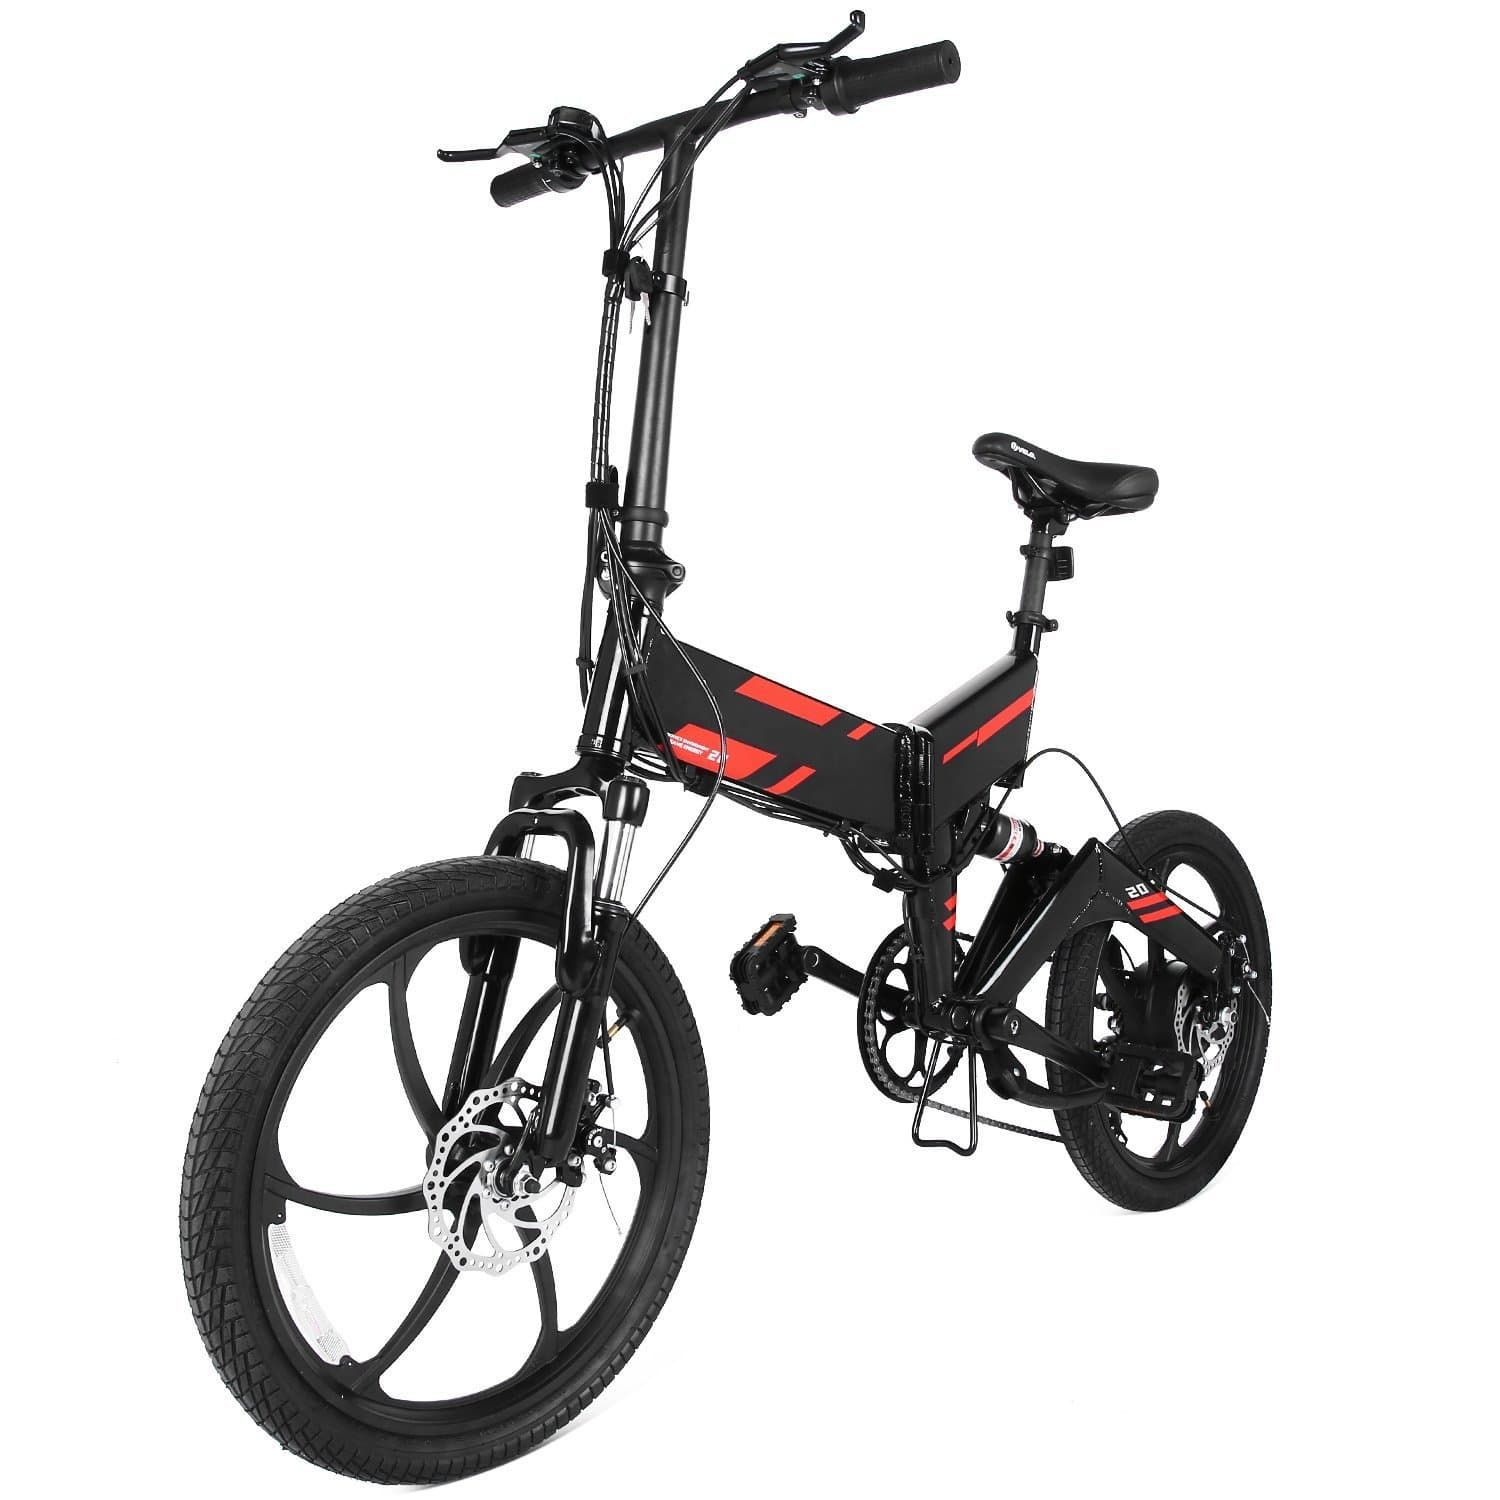 Top 8 Best Lightweight Folding Bikes In 2020 Reviews With